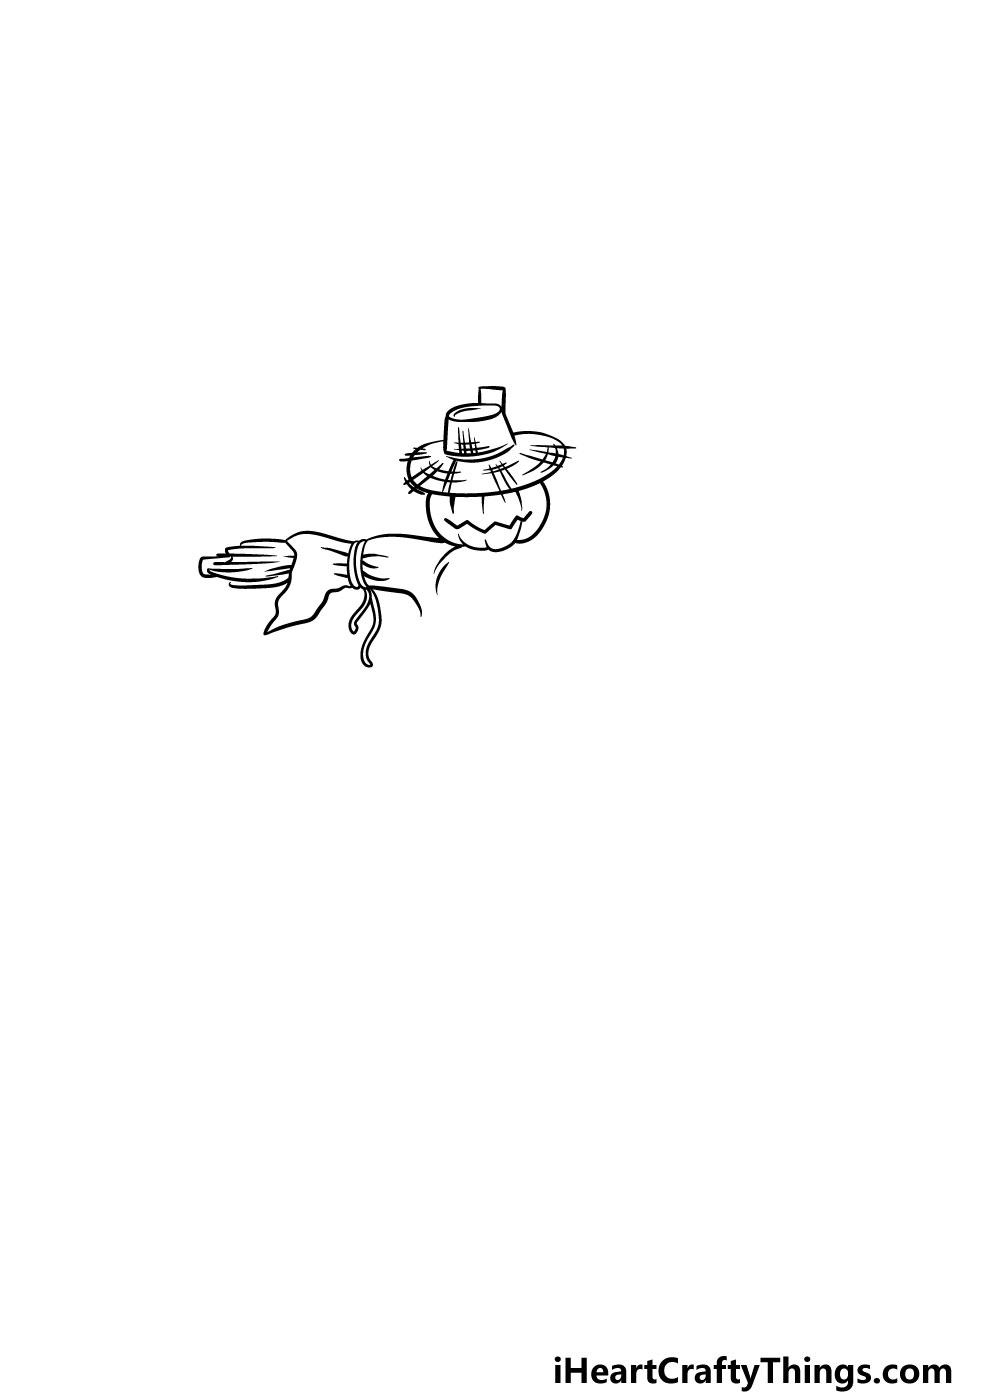 drawing a scarecrow step 2